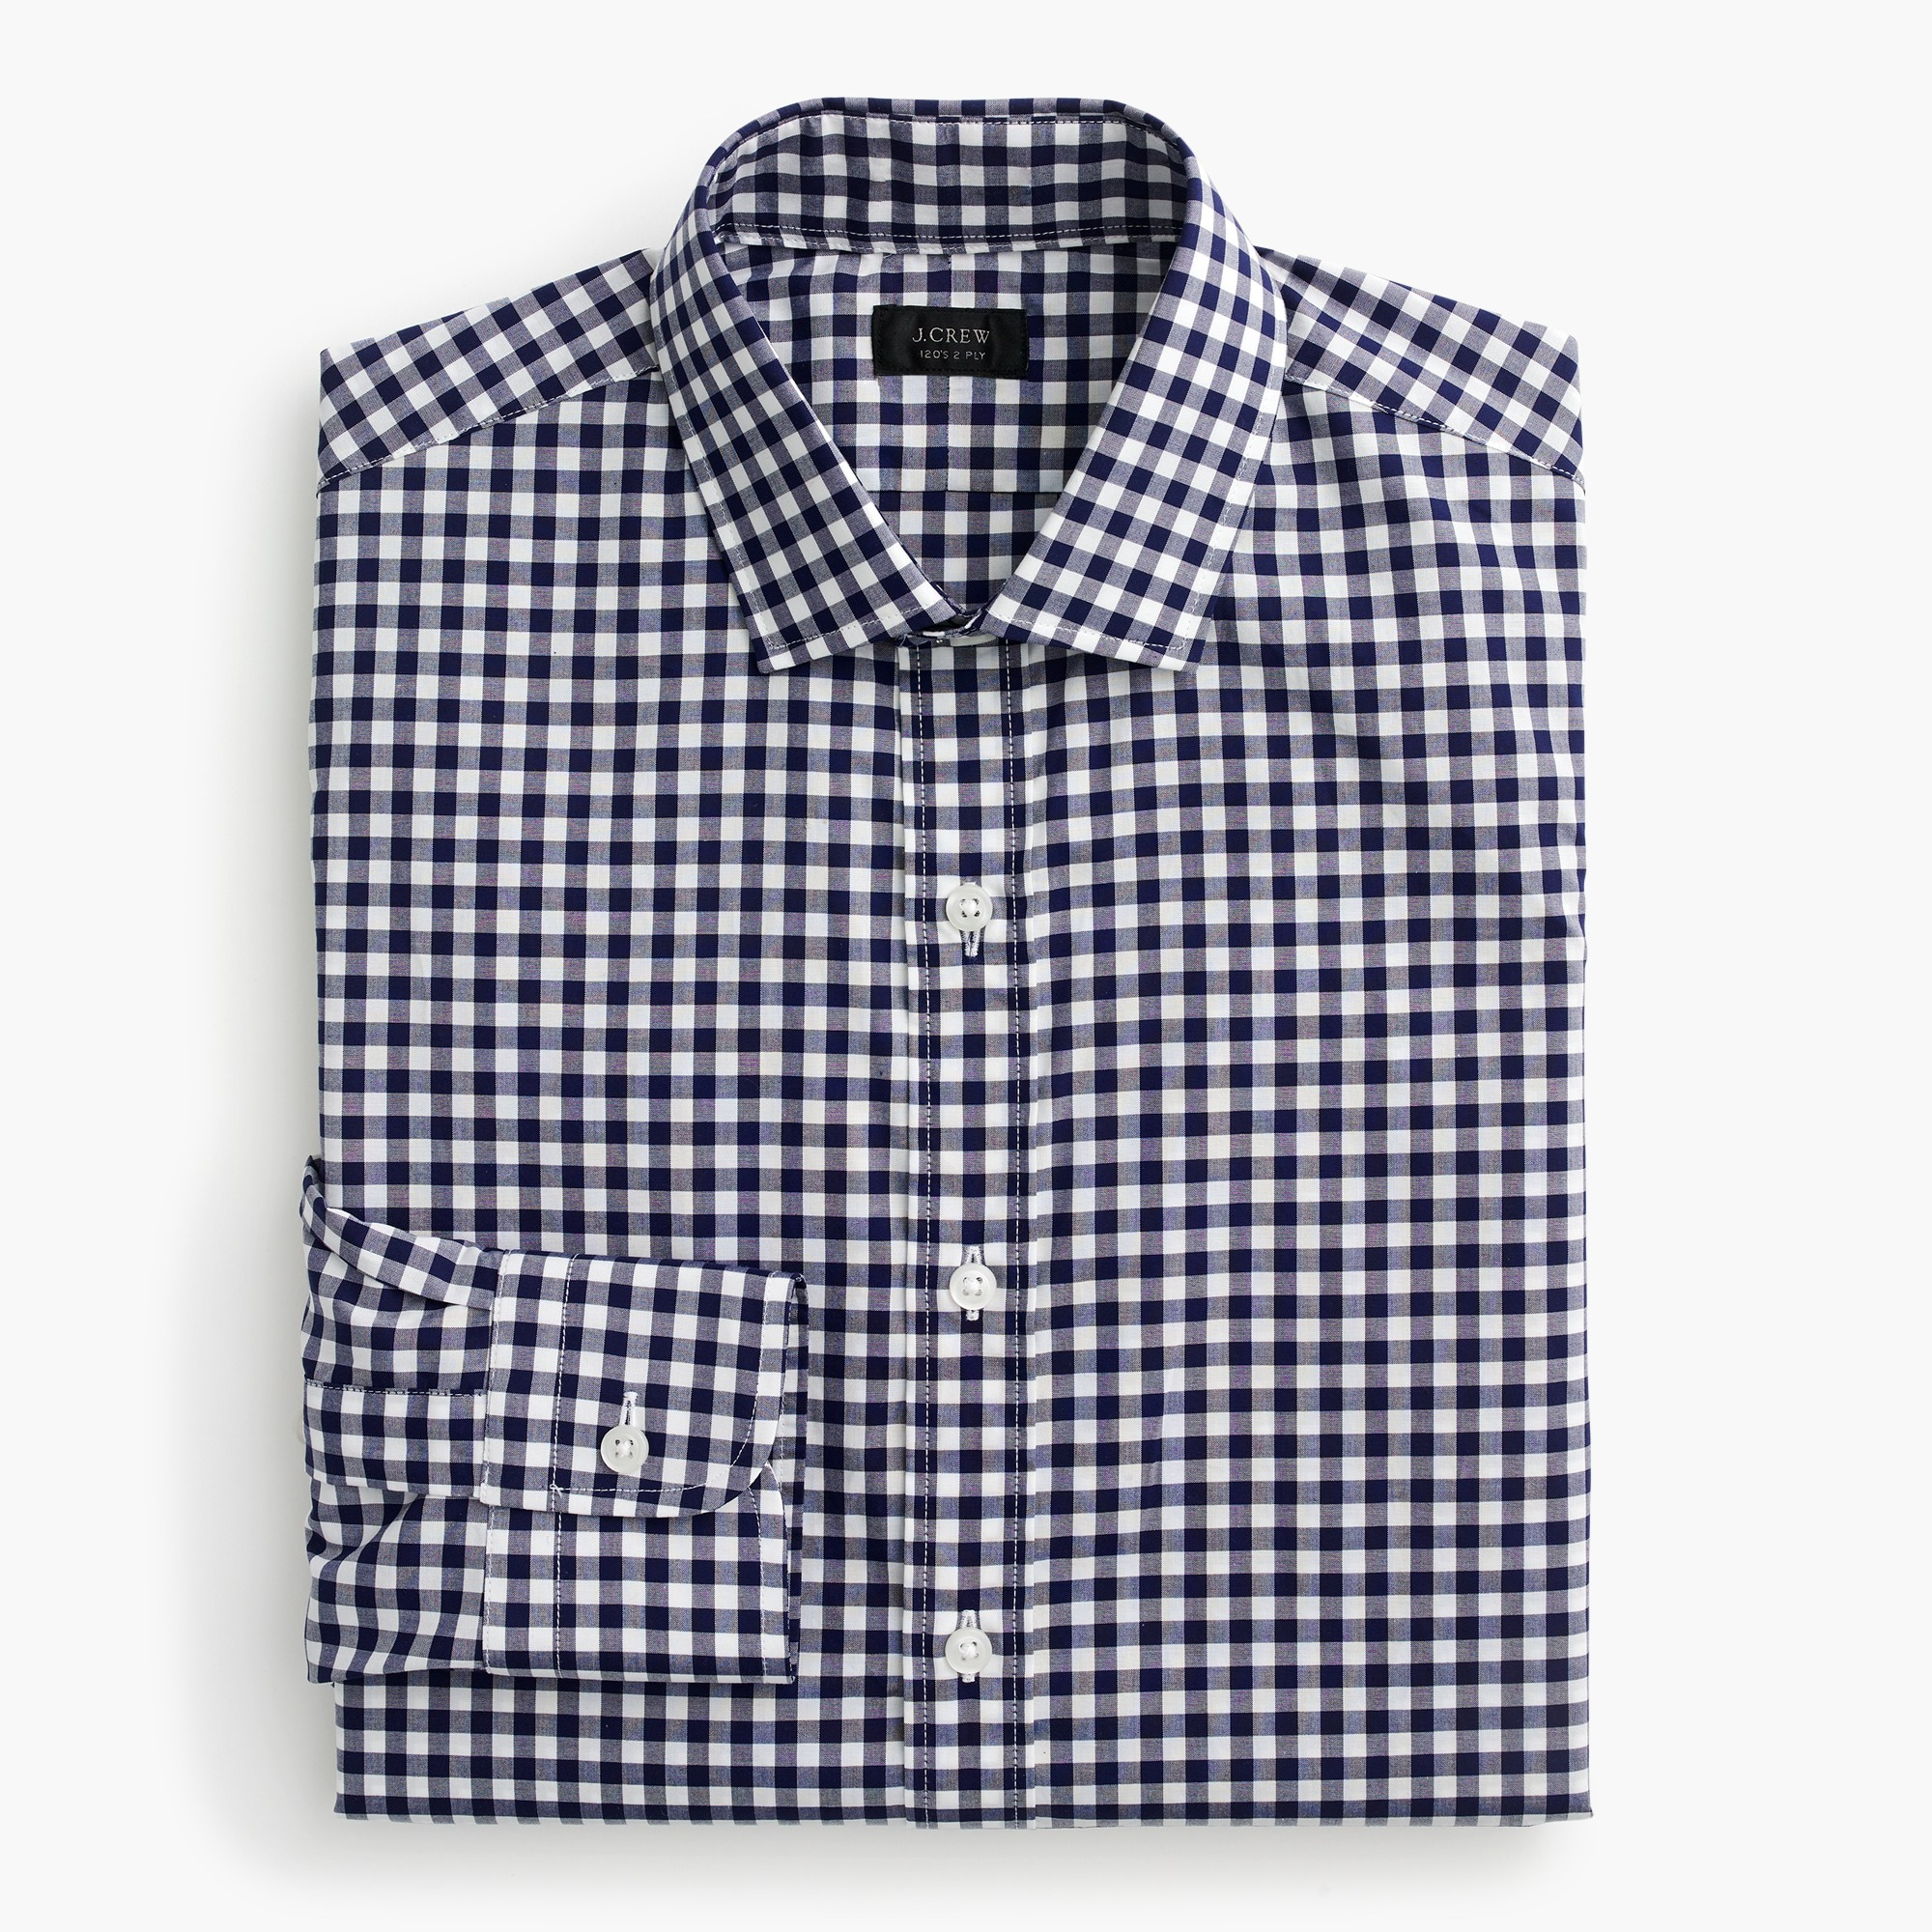 ludlow spread-collar shirt in navy gingham : men's shirts